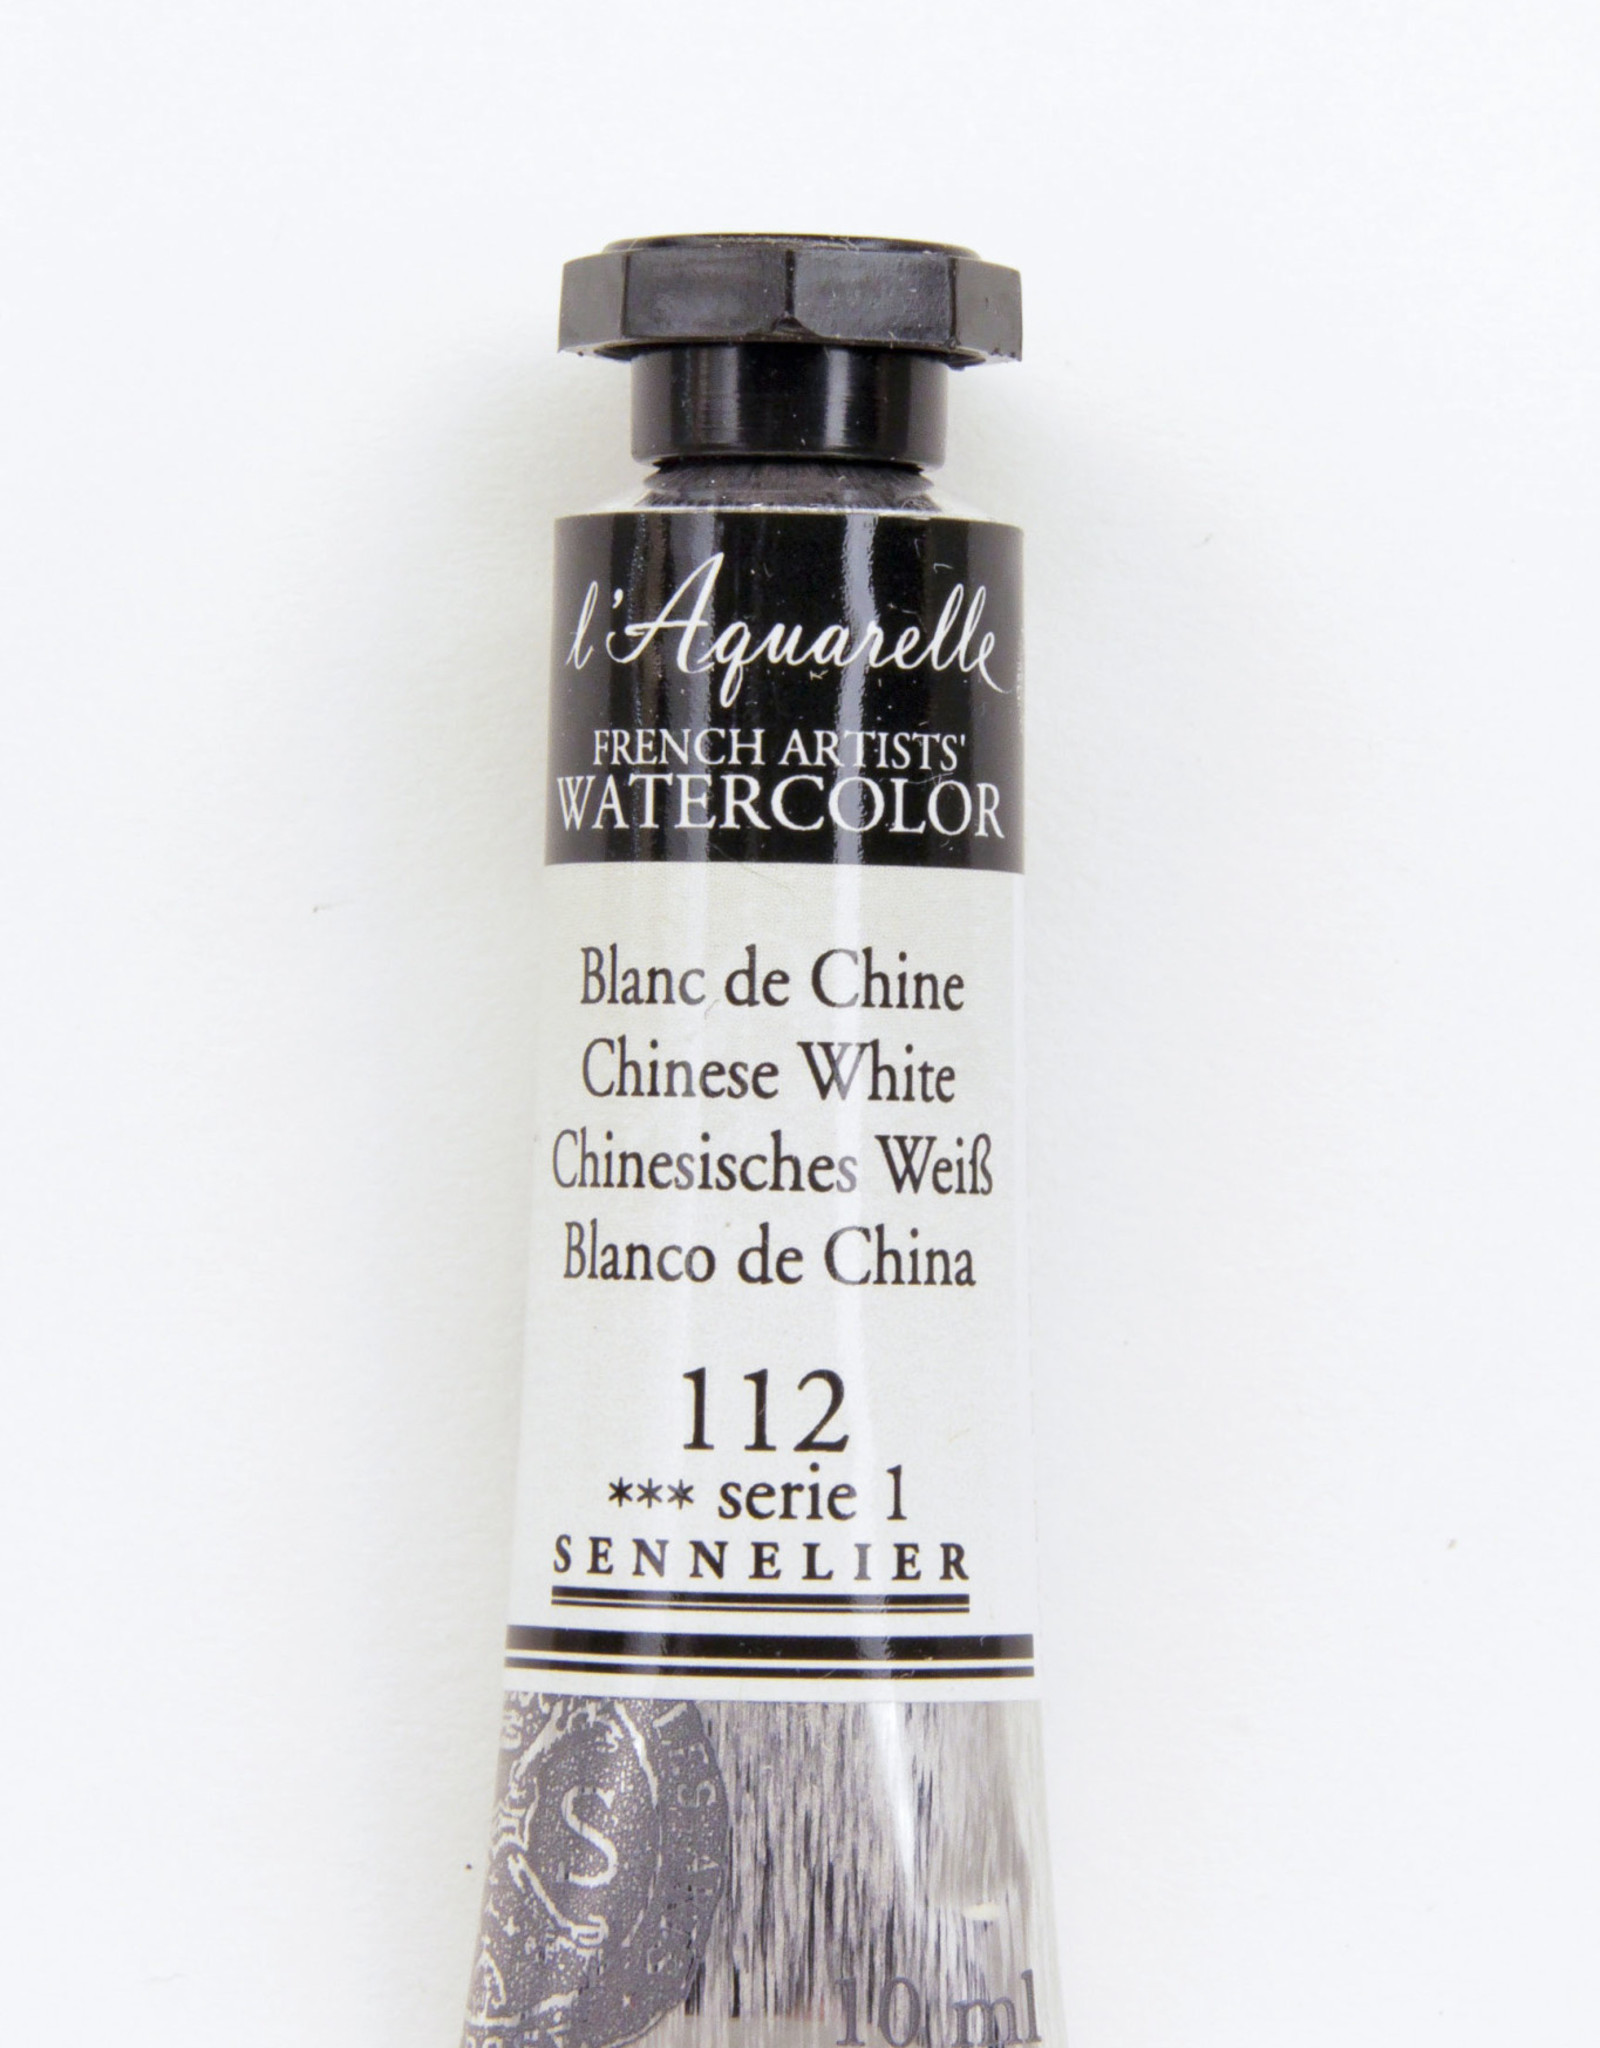 Sennelier, Aquarelle Watercolor Paint, Chinese White, 112, 10ml Tube, Series 1